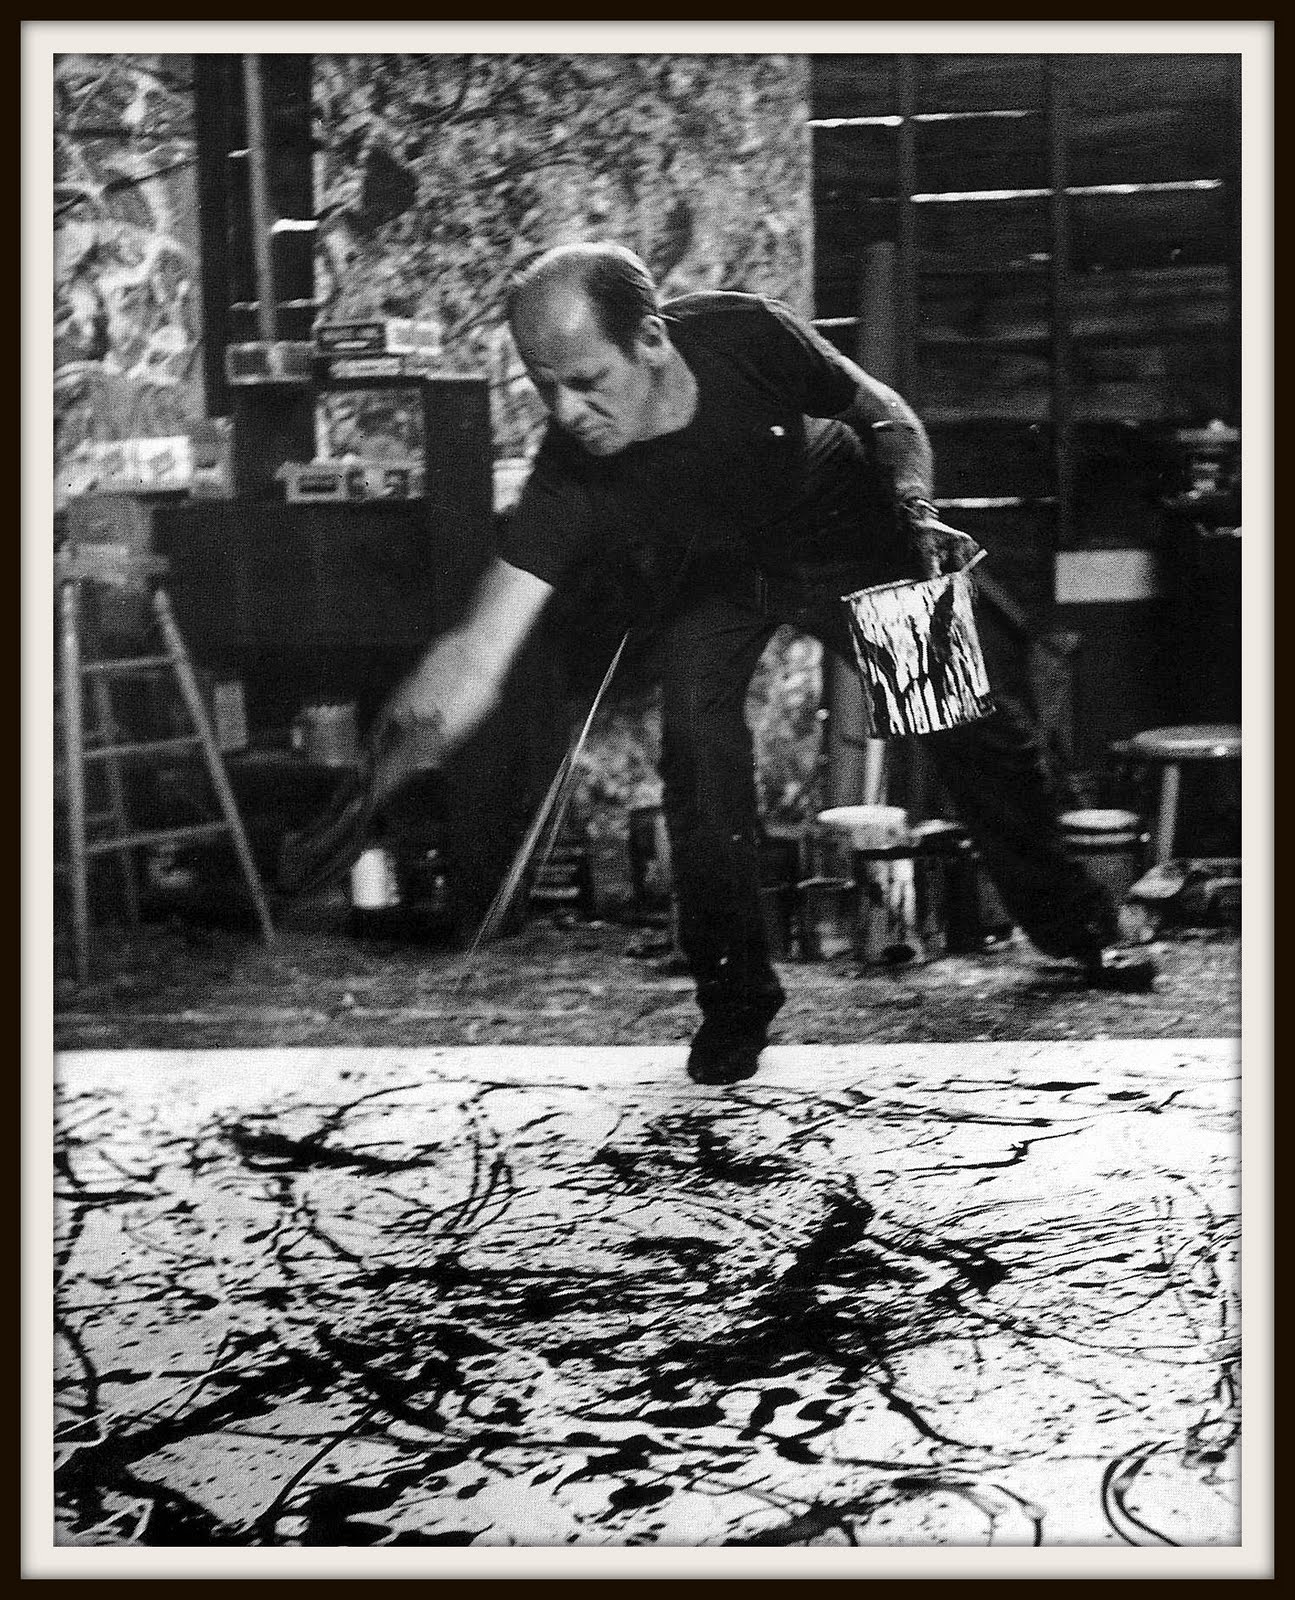 jackson pollocks career essay Exhibition of jackson pollock's black paintings to open exclusively at dallas museum of art in november jackson  artist's career and provides radical new .